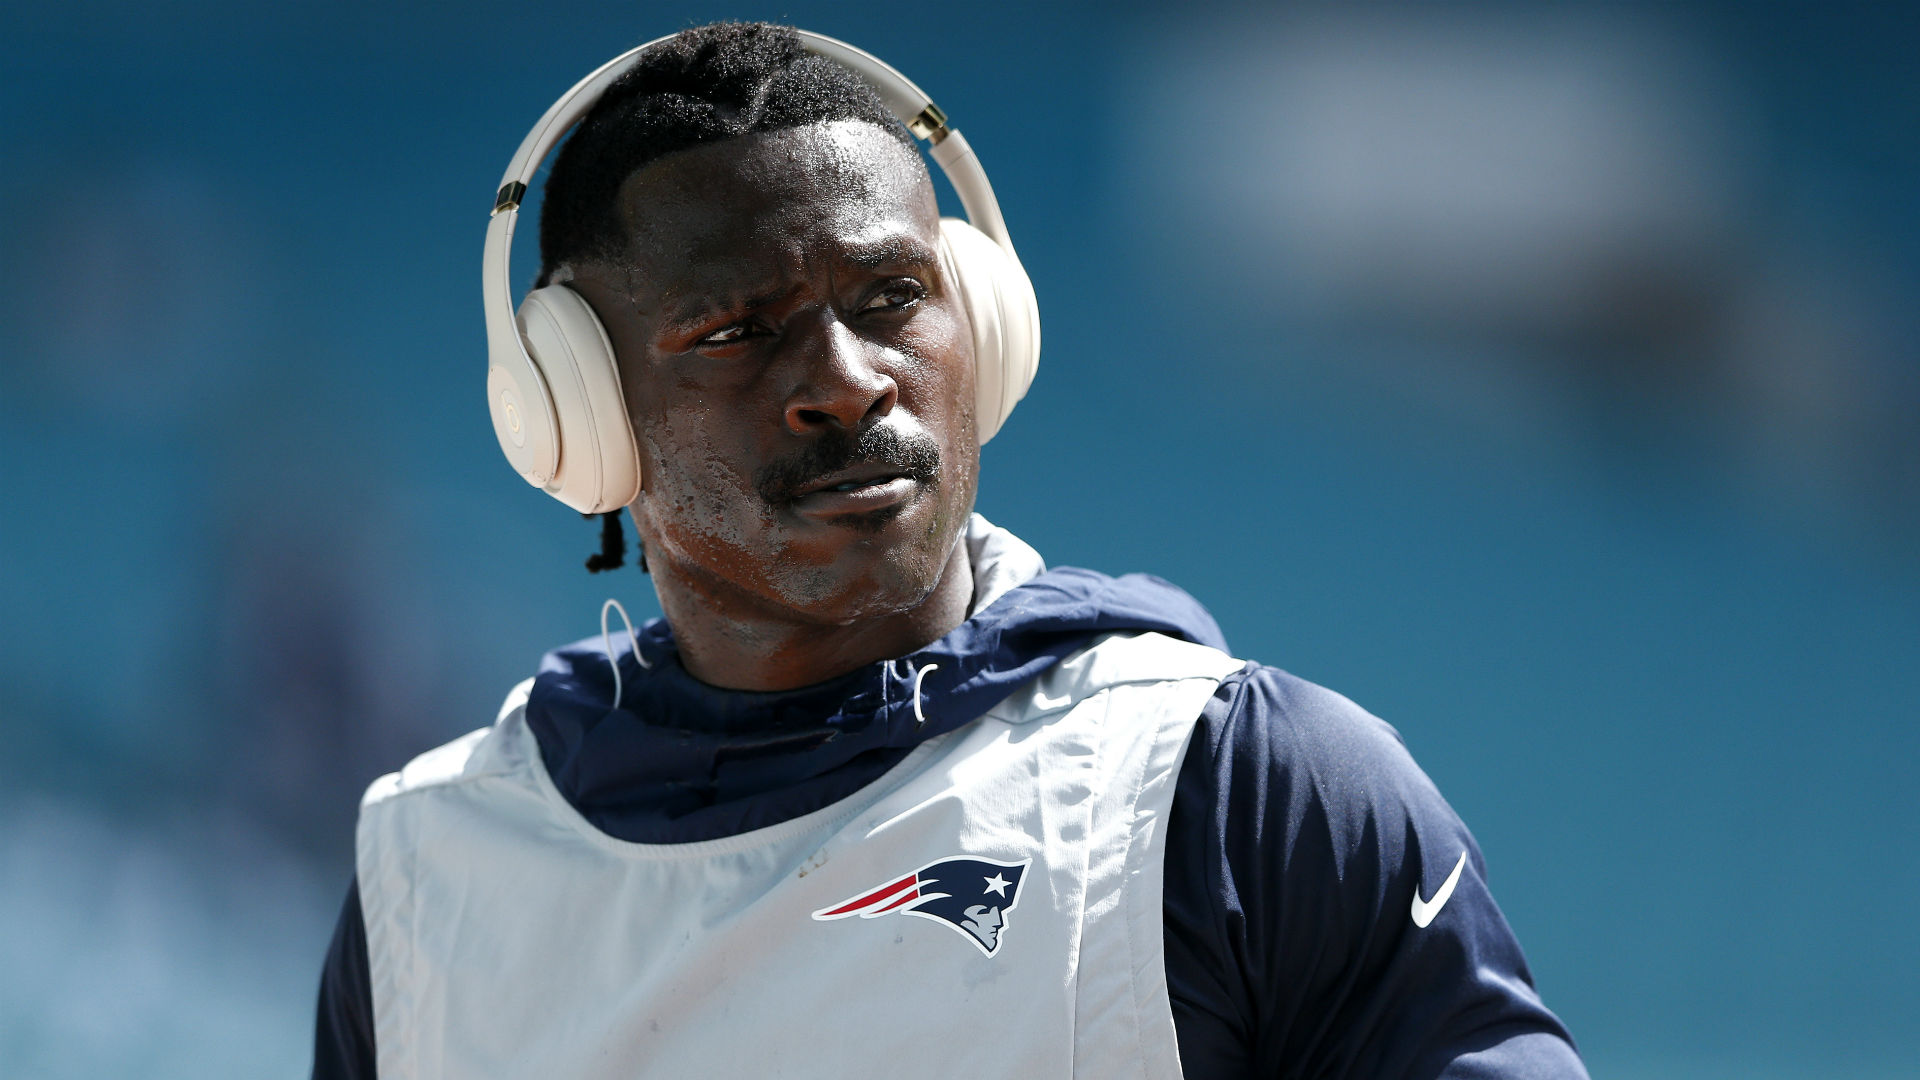 """Antonio Brown wants help getting back into the NFL as he acknowledges he """"didn't handle challenges in the manner I should have""""."""